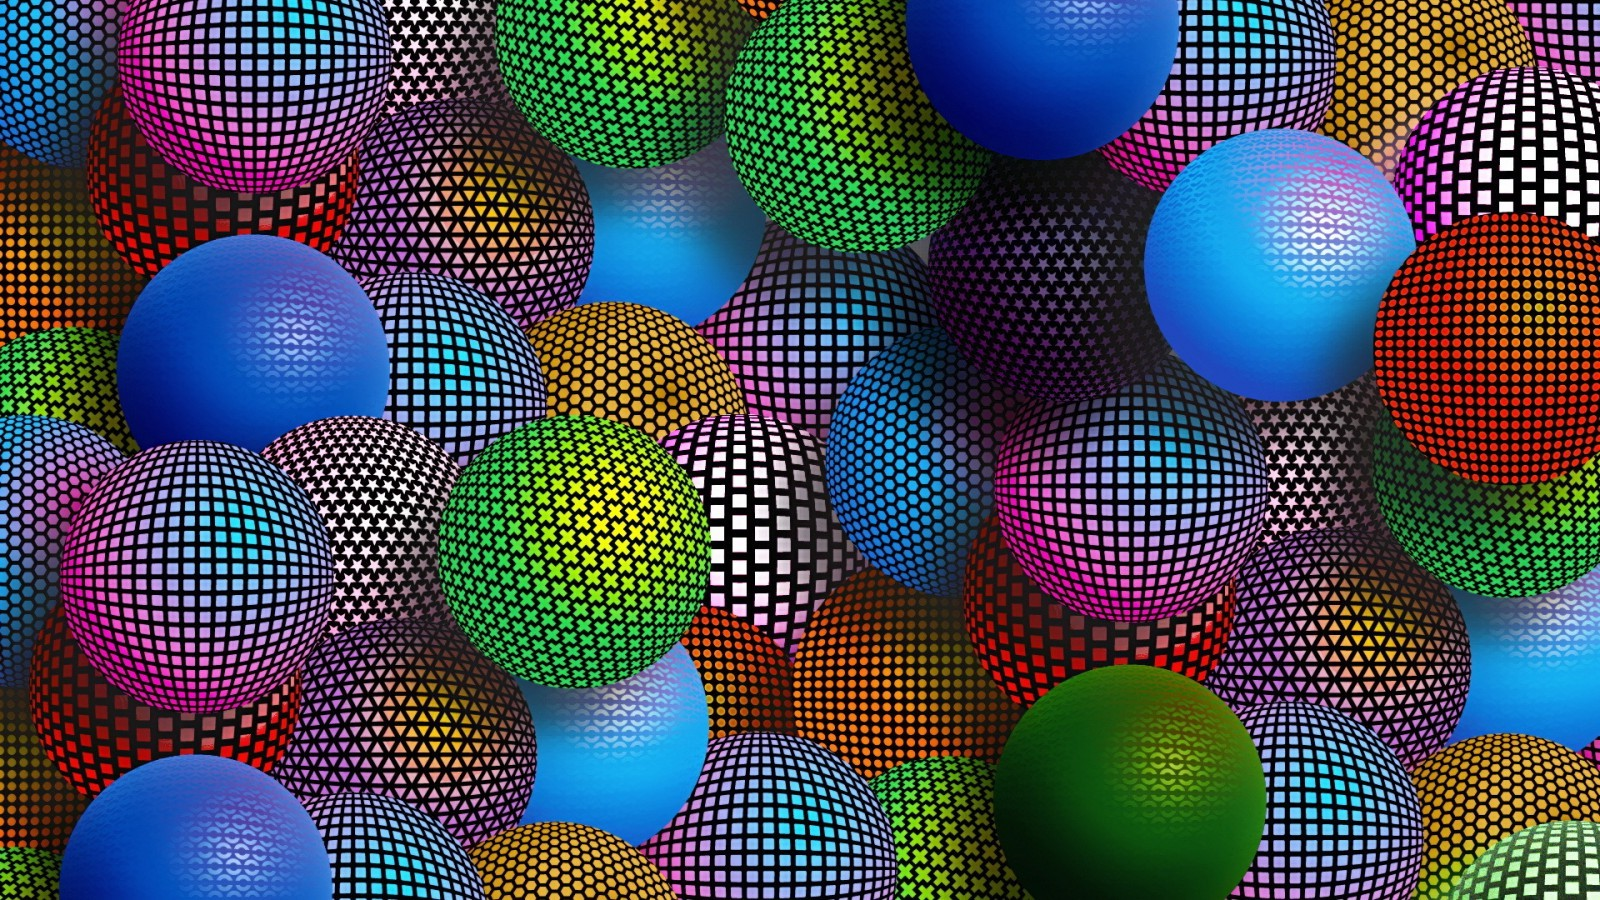 Polka Dots Wallpaper For Iphone Sphere Ball Abstract Digital Art Wallpapers Hd